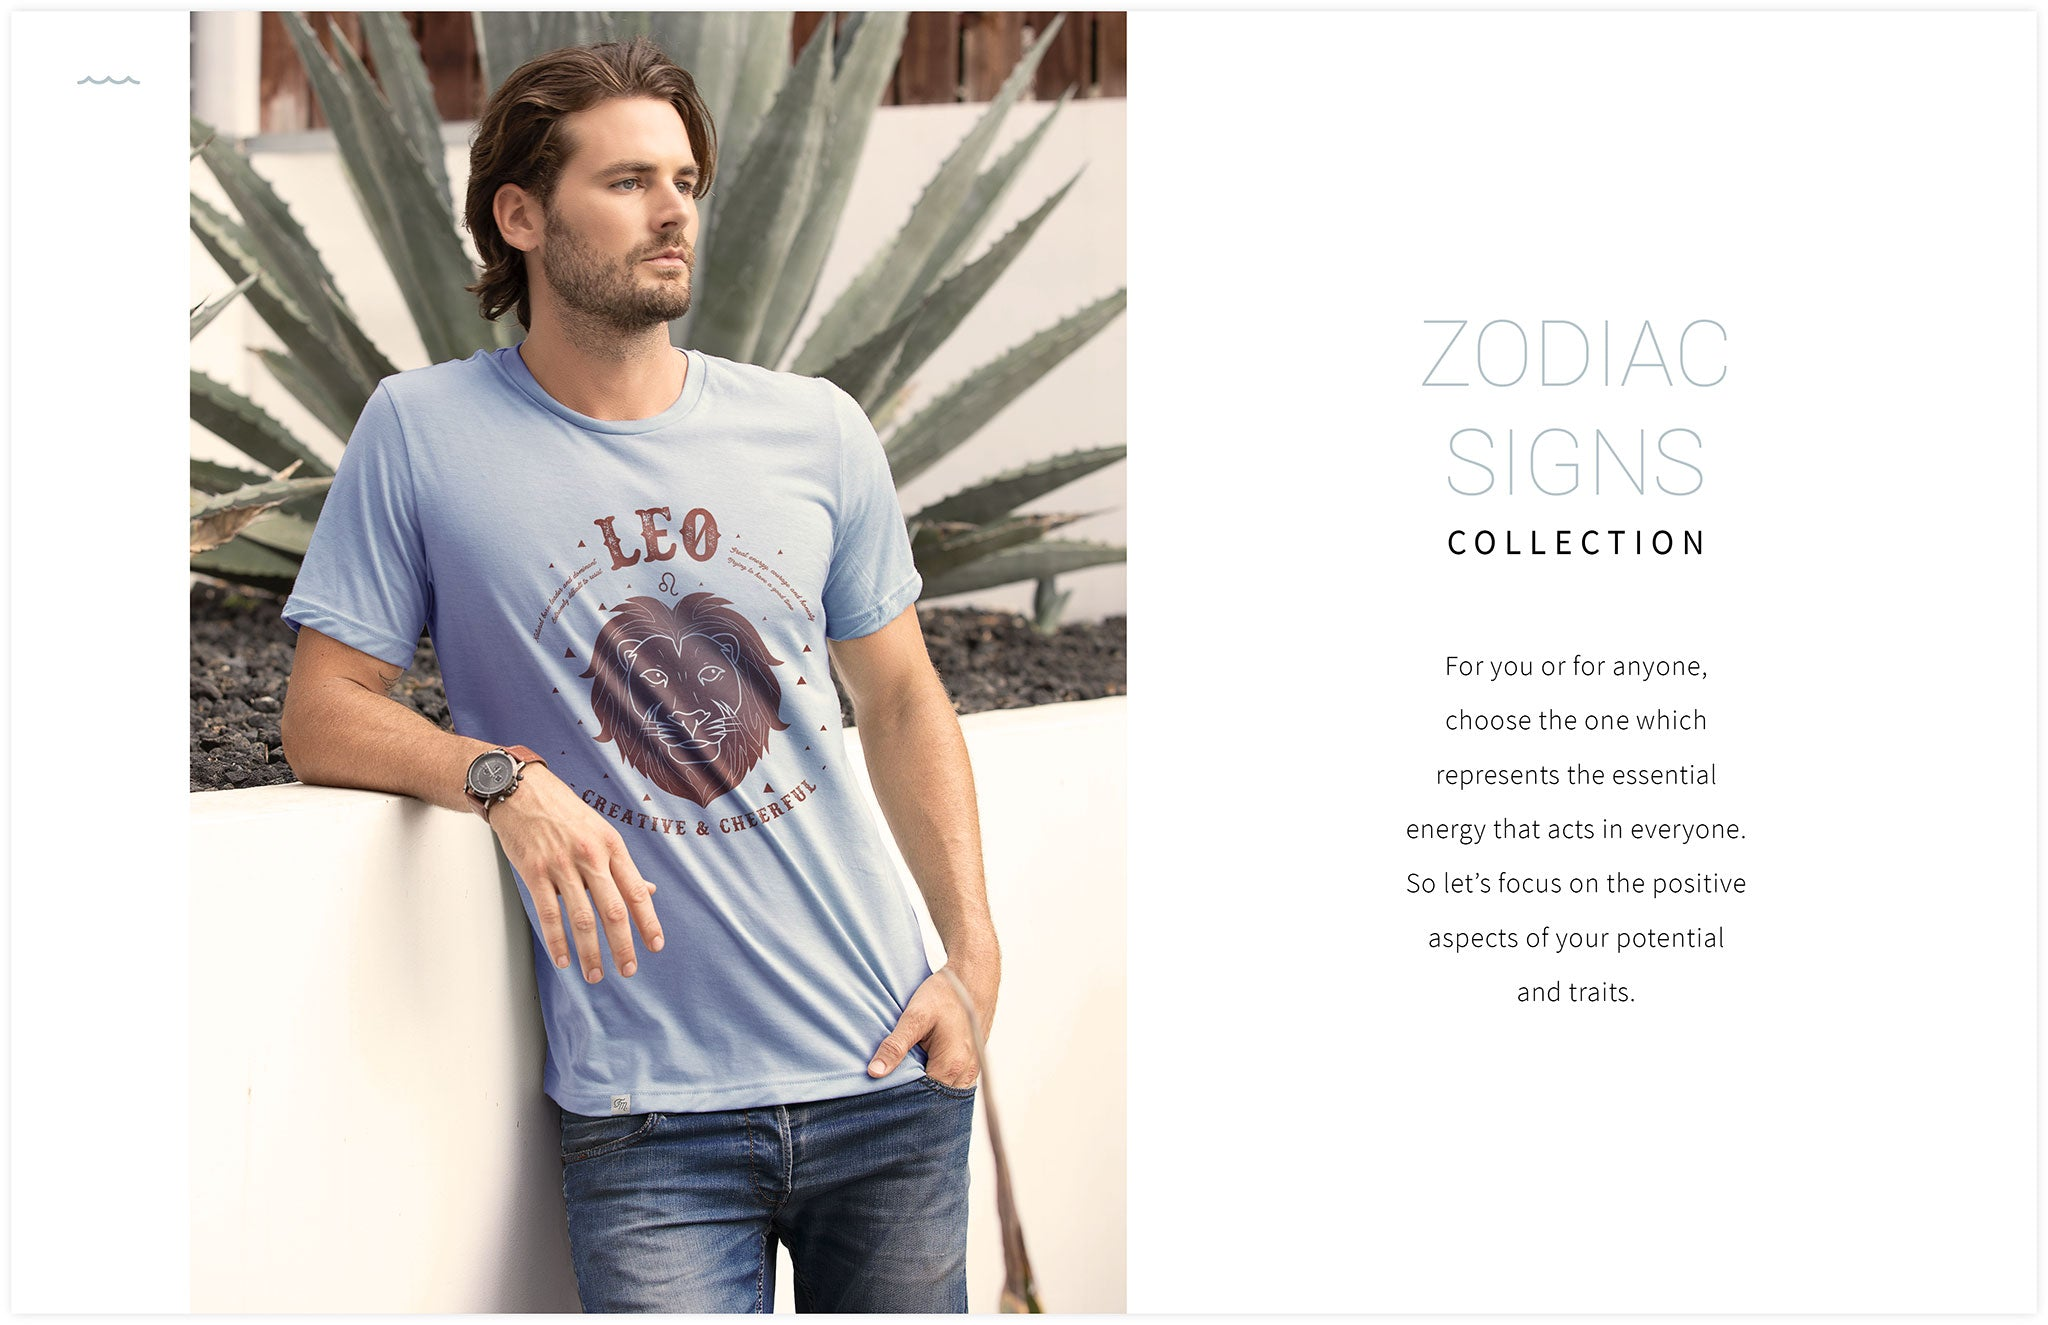 FRESH MOOD LOOK BOOK 2018 || ZODIAC SIGNS PRINTED APPAREL DESIGN COLLECTION